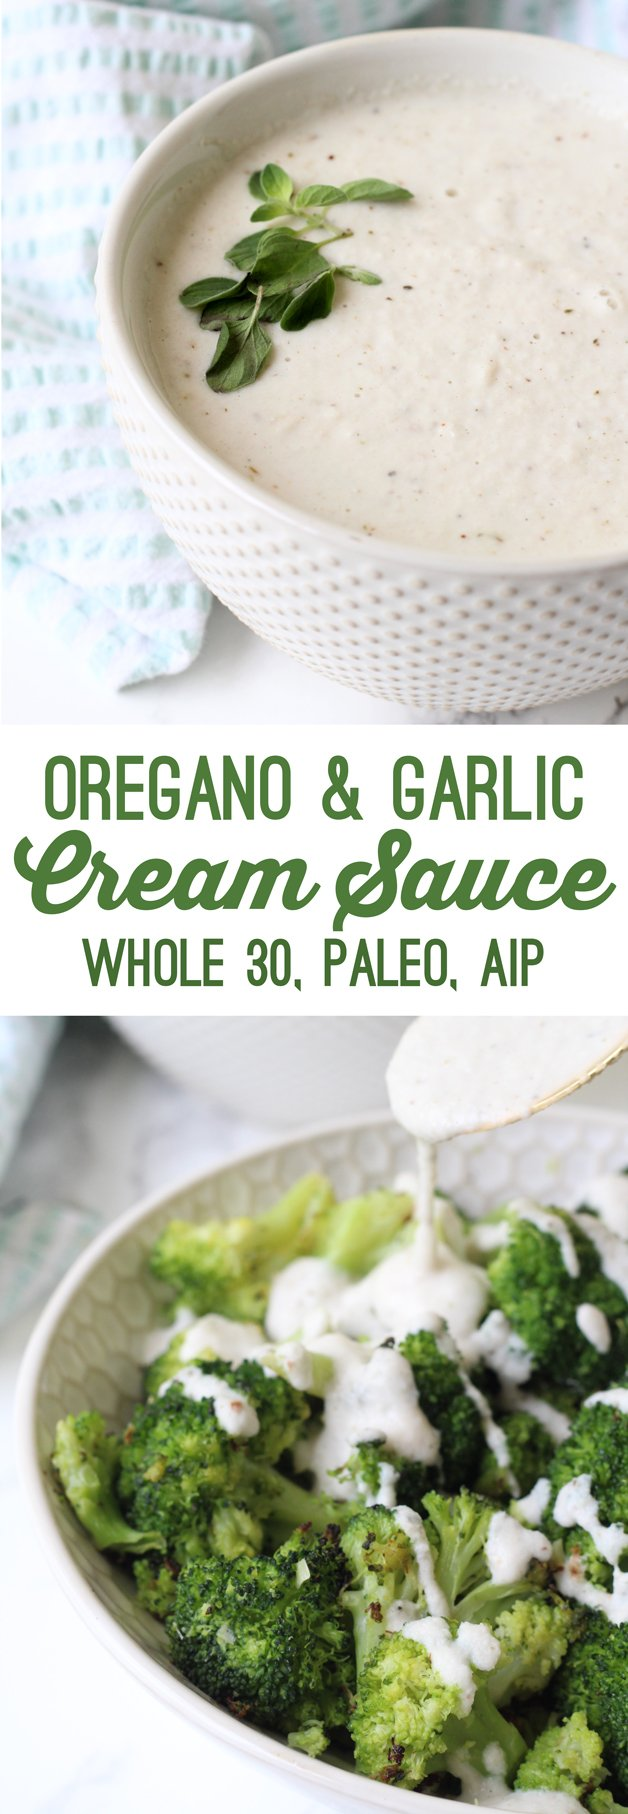 Oregano Garlic Cream Sauce (Whole 30, Paleo, AIP)